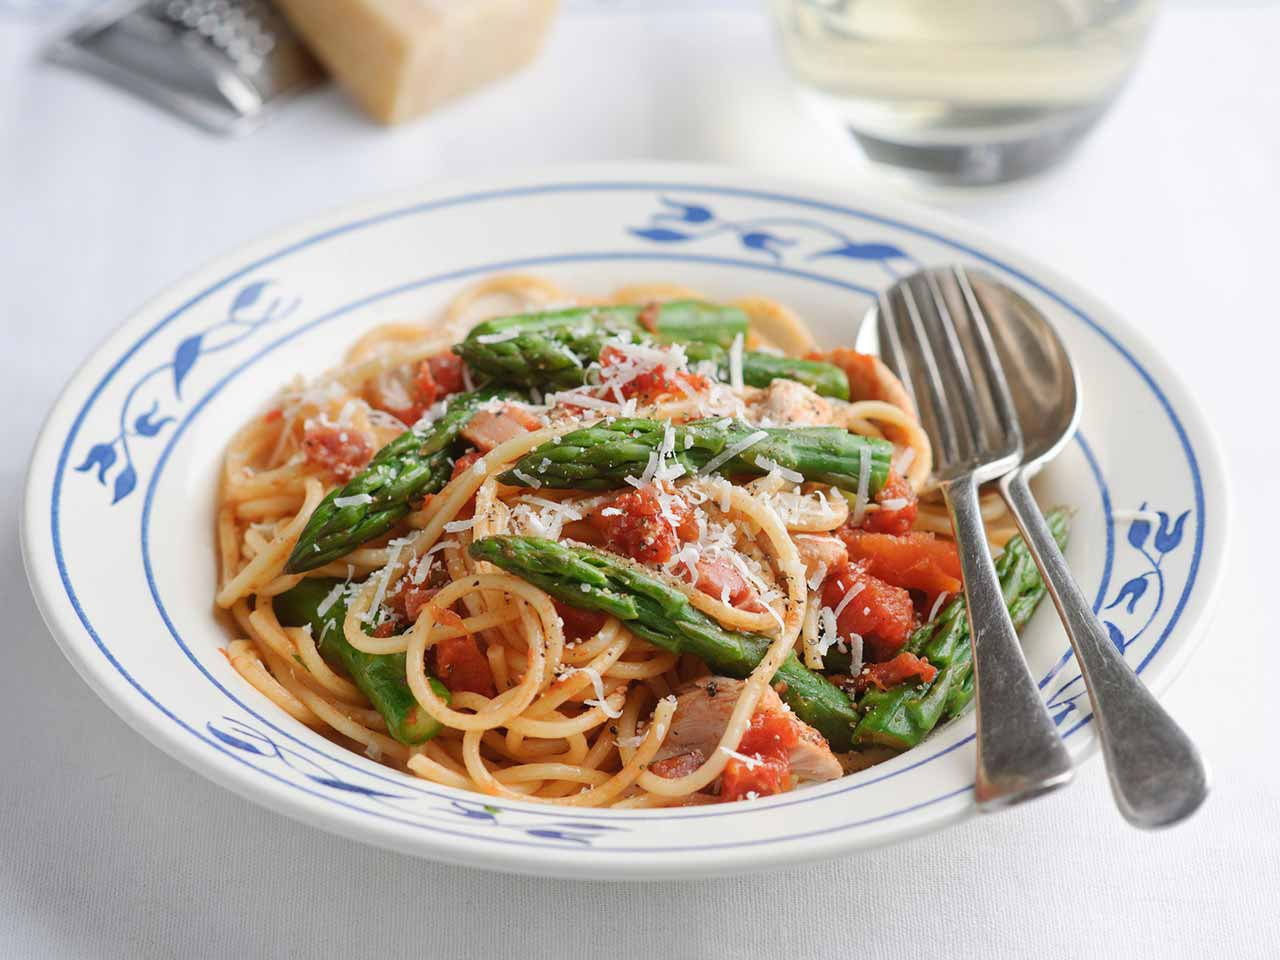 Spicy chicken and asparagus pasta